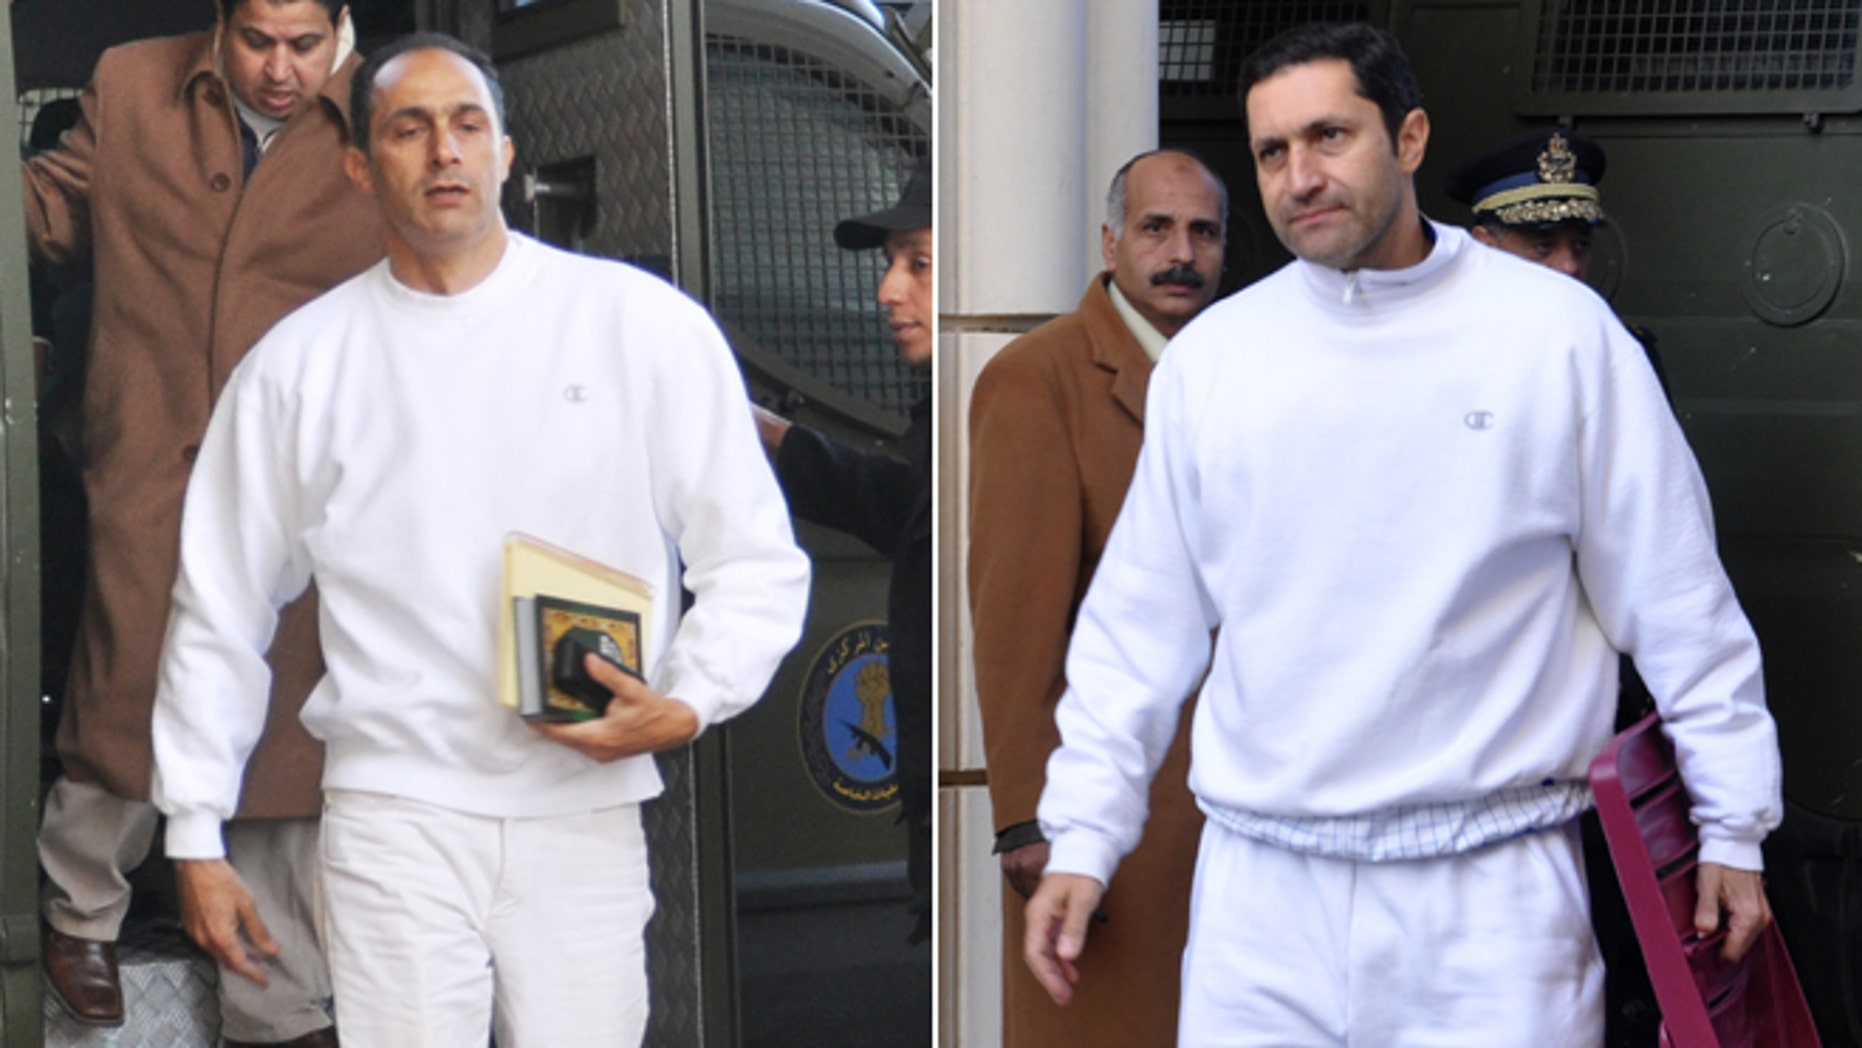 Jan. 24, 2012: FILE - Alaa Mubarak, right, and Gamal Mubarak, left, sons of former Egyptian president Hosni Mubarak, arrive at the court house in Cairo, Egypt.